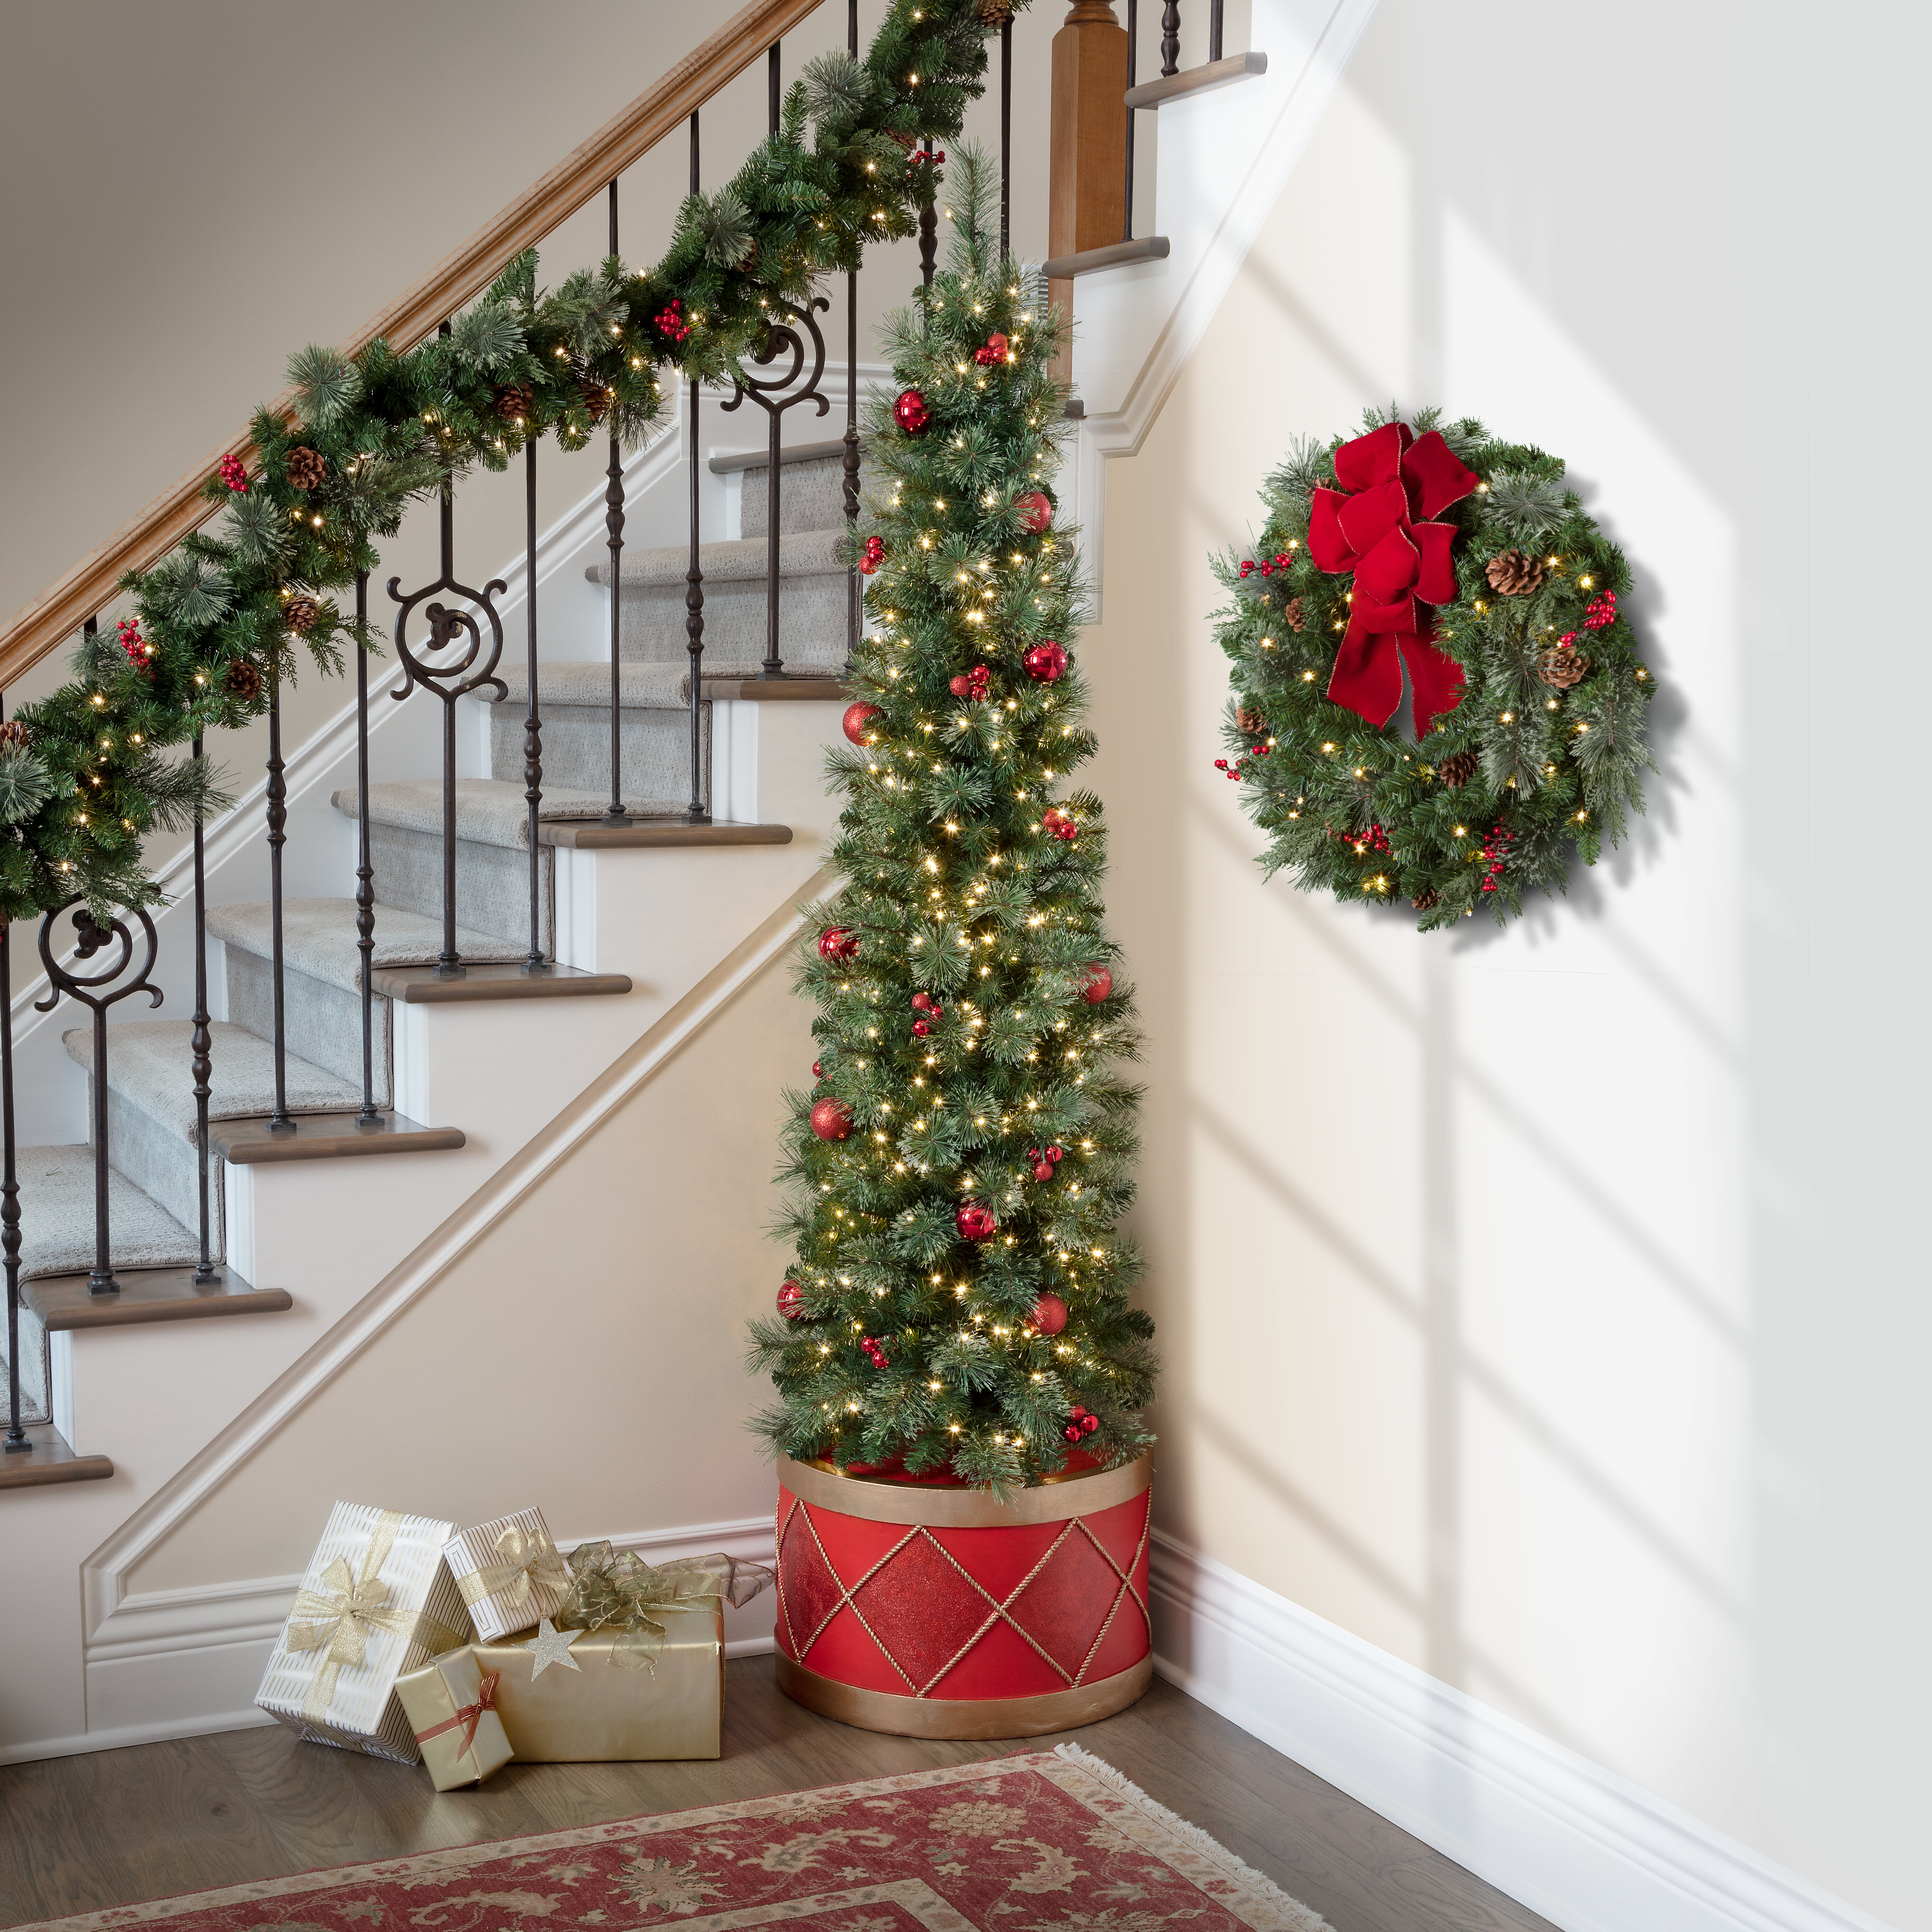 Cost Of Christmas Trees 2020 In Vero Beach Fl Haute Decor Calgary Drum 6.7' Green Spruce Artificial Christmas